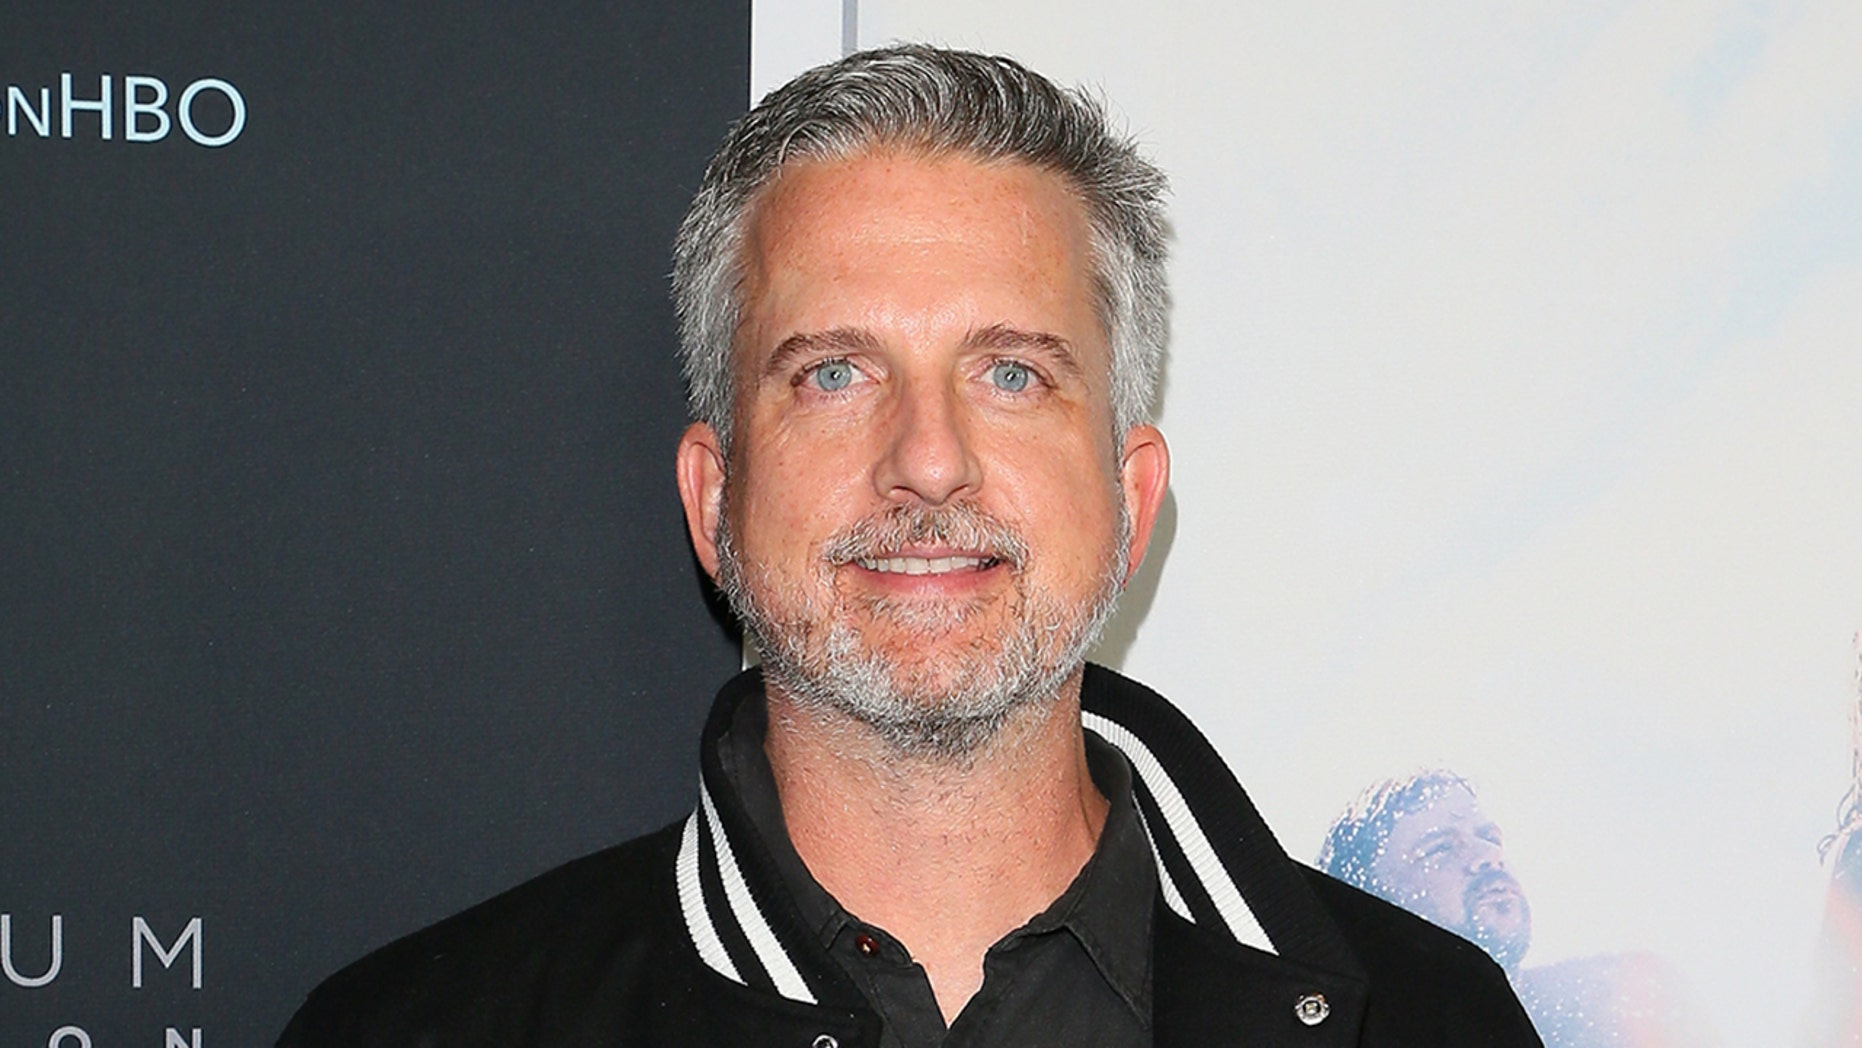 ESPN says it didn't mean any harm when former employee Bill Simmons was deleted from his own interview.